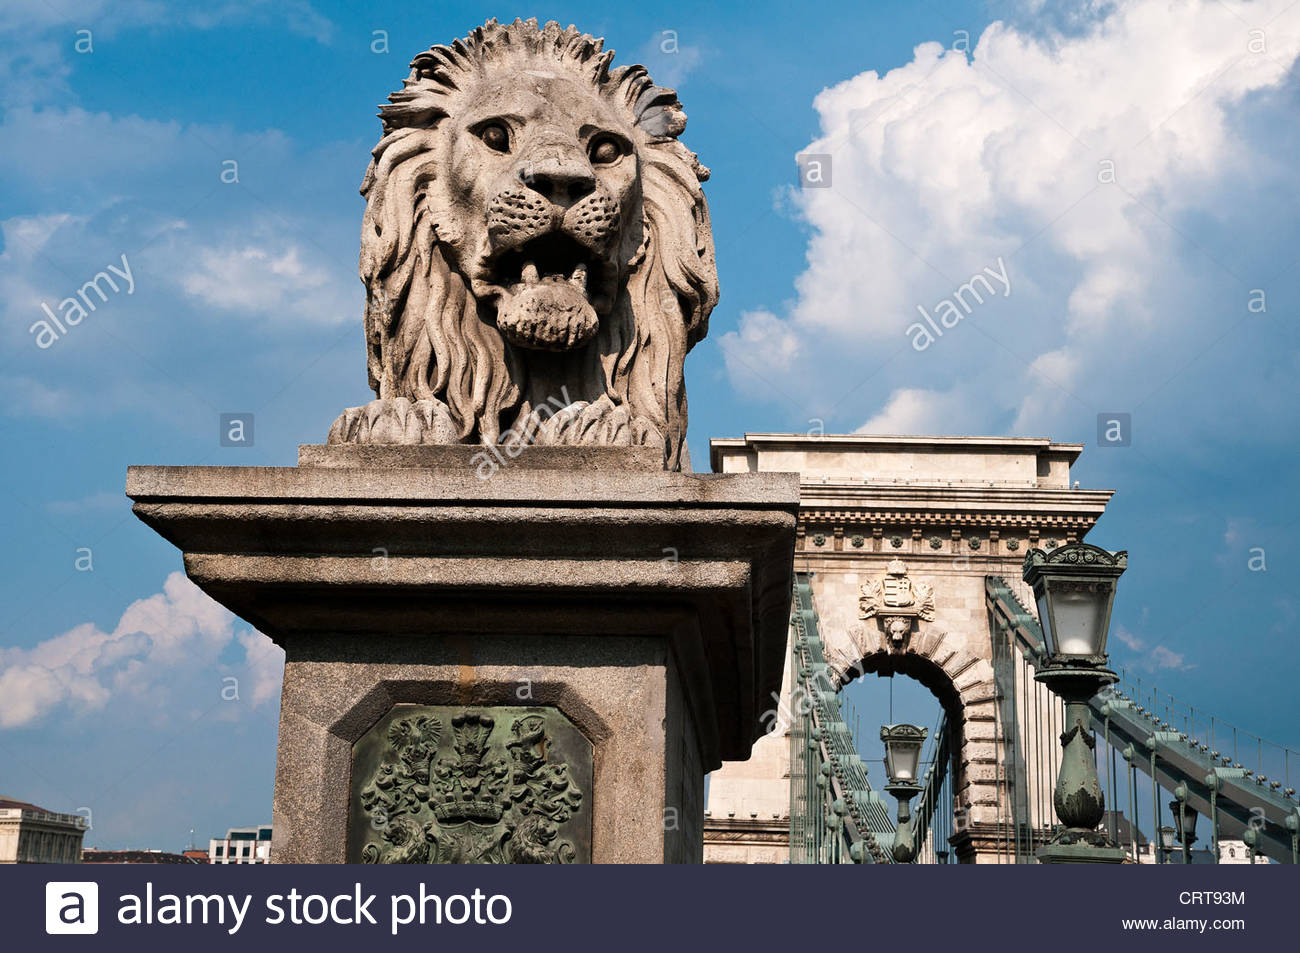 Statue of the guardian lion with the Széchenyi Chain Bridge in the background, Budapest, Hungary - Stock Image